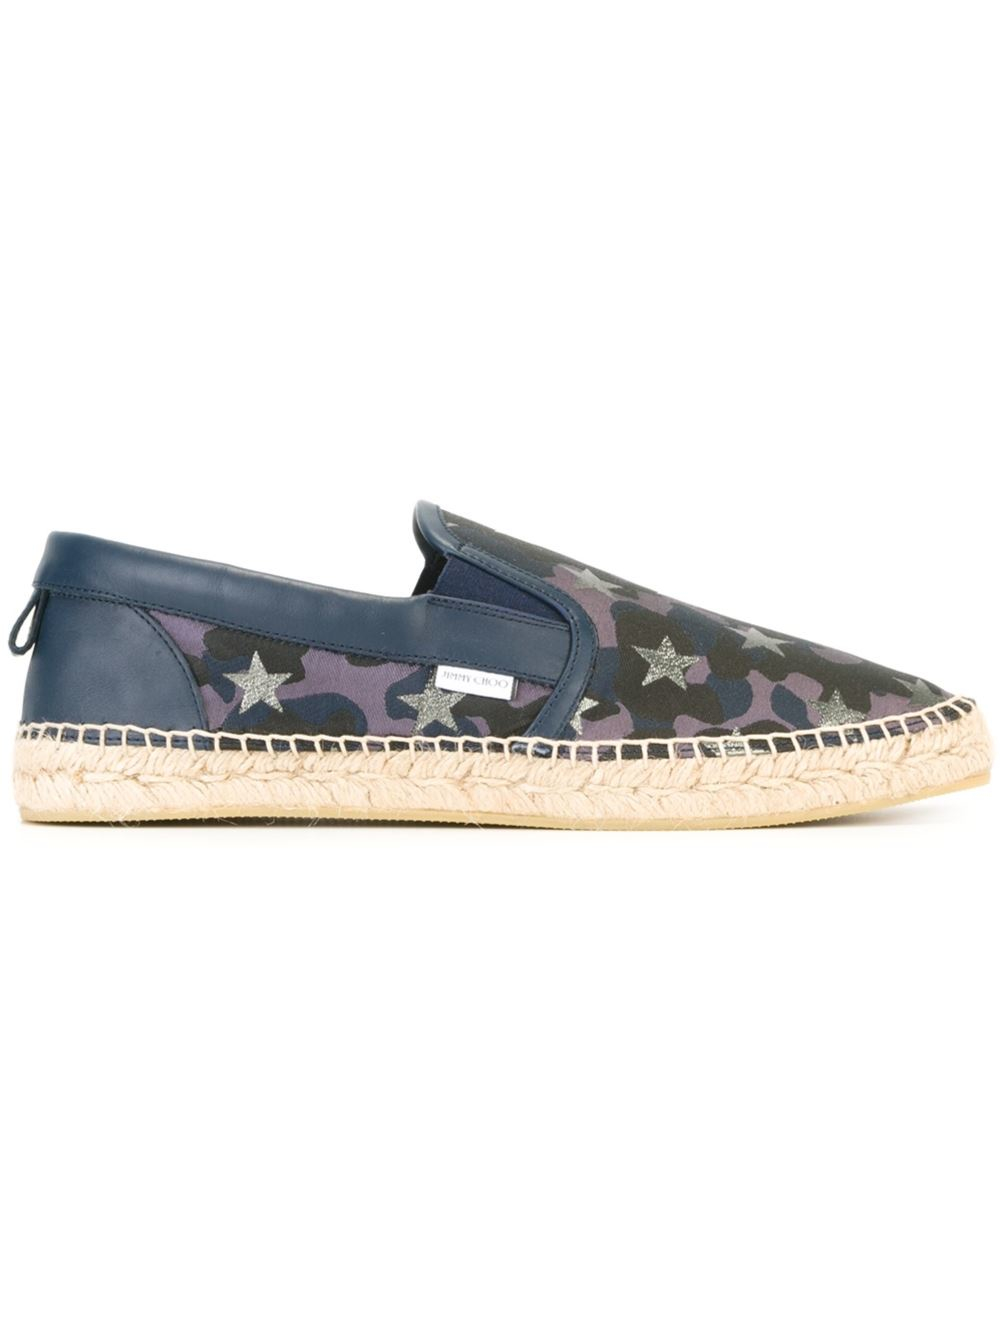 Jimmy choo vlad espadrilles in blue for men lyst for Jimmy choo mens shirts